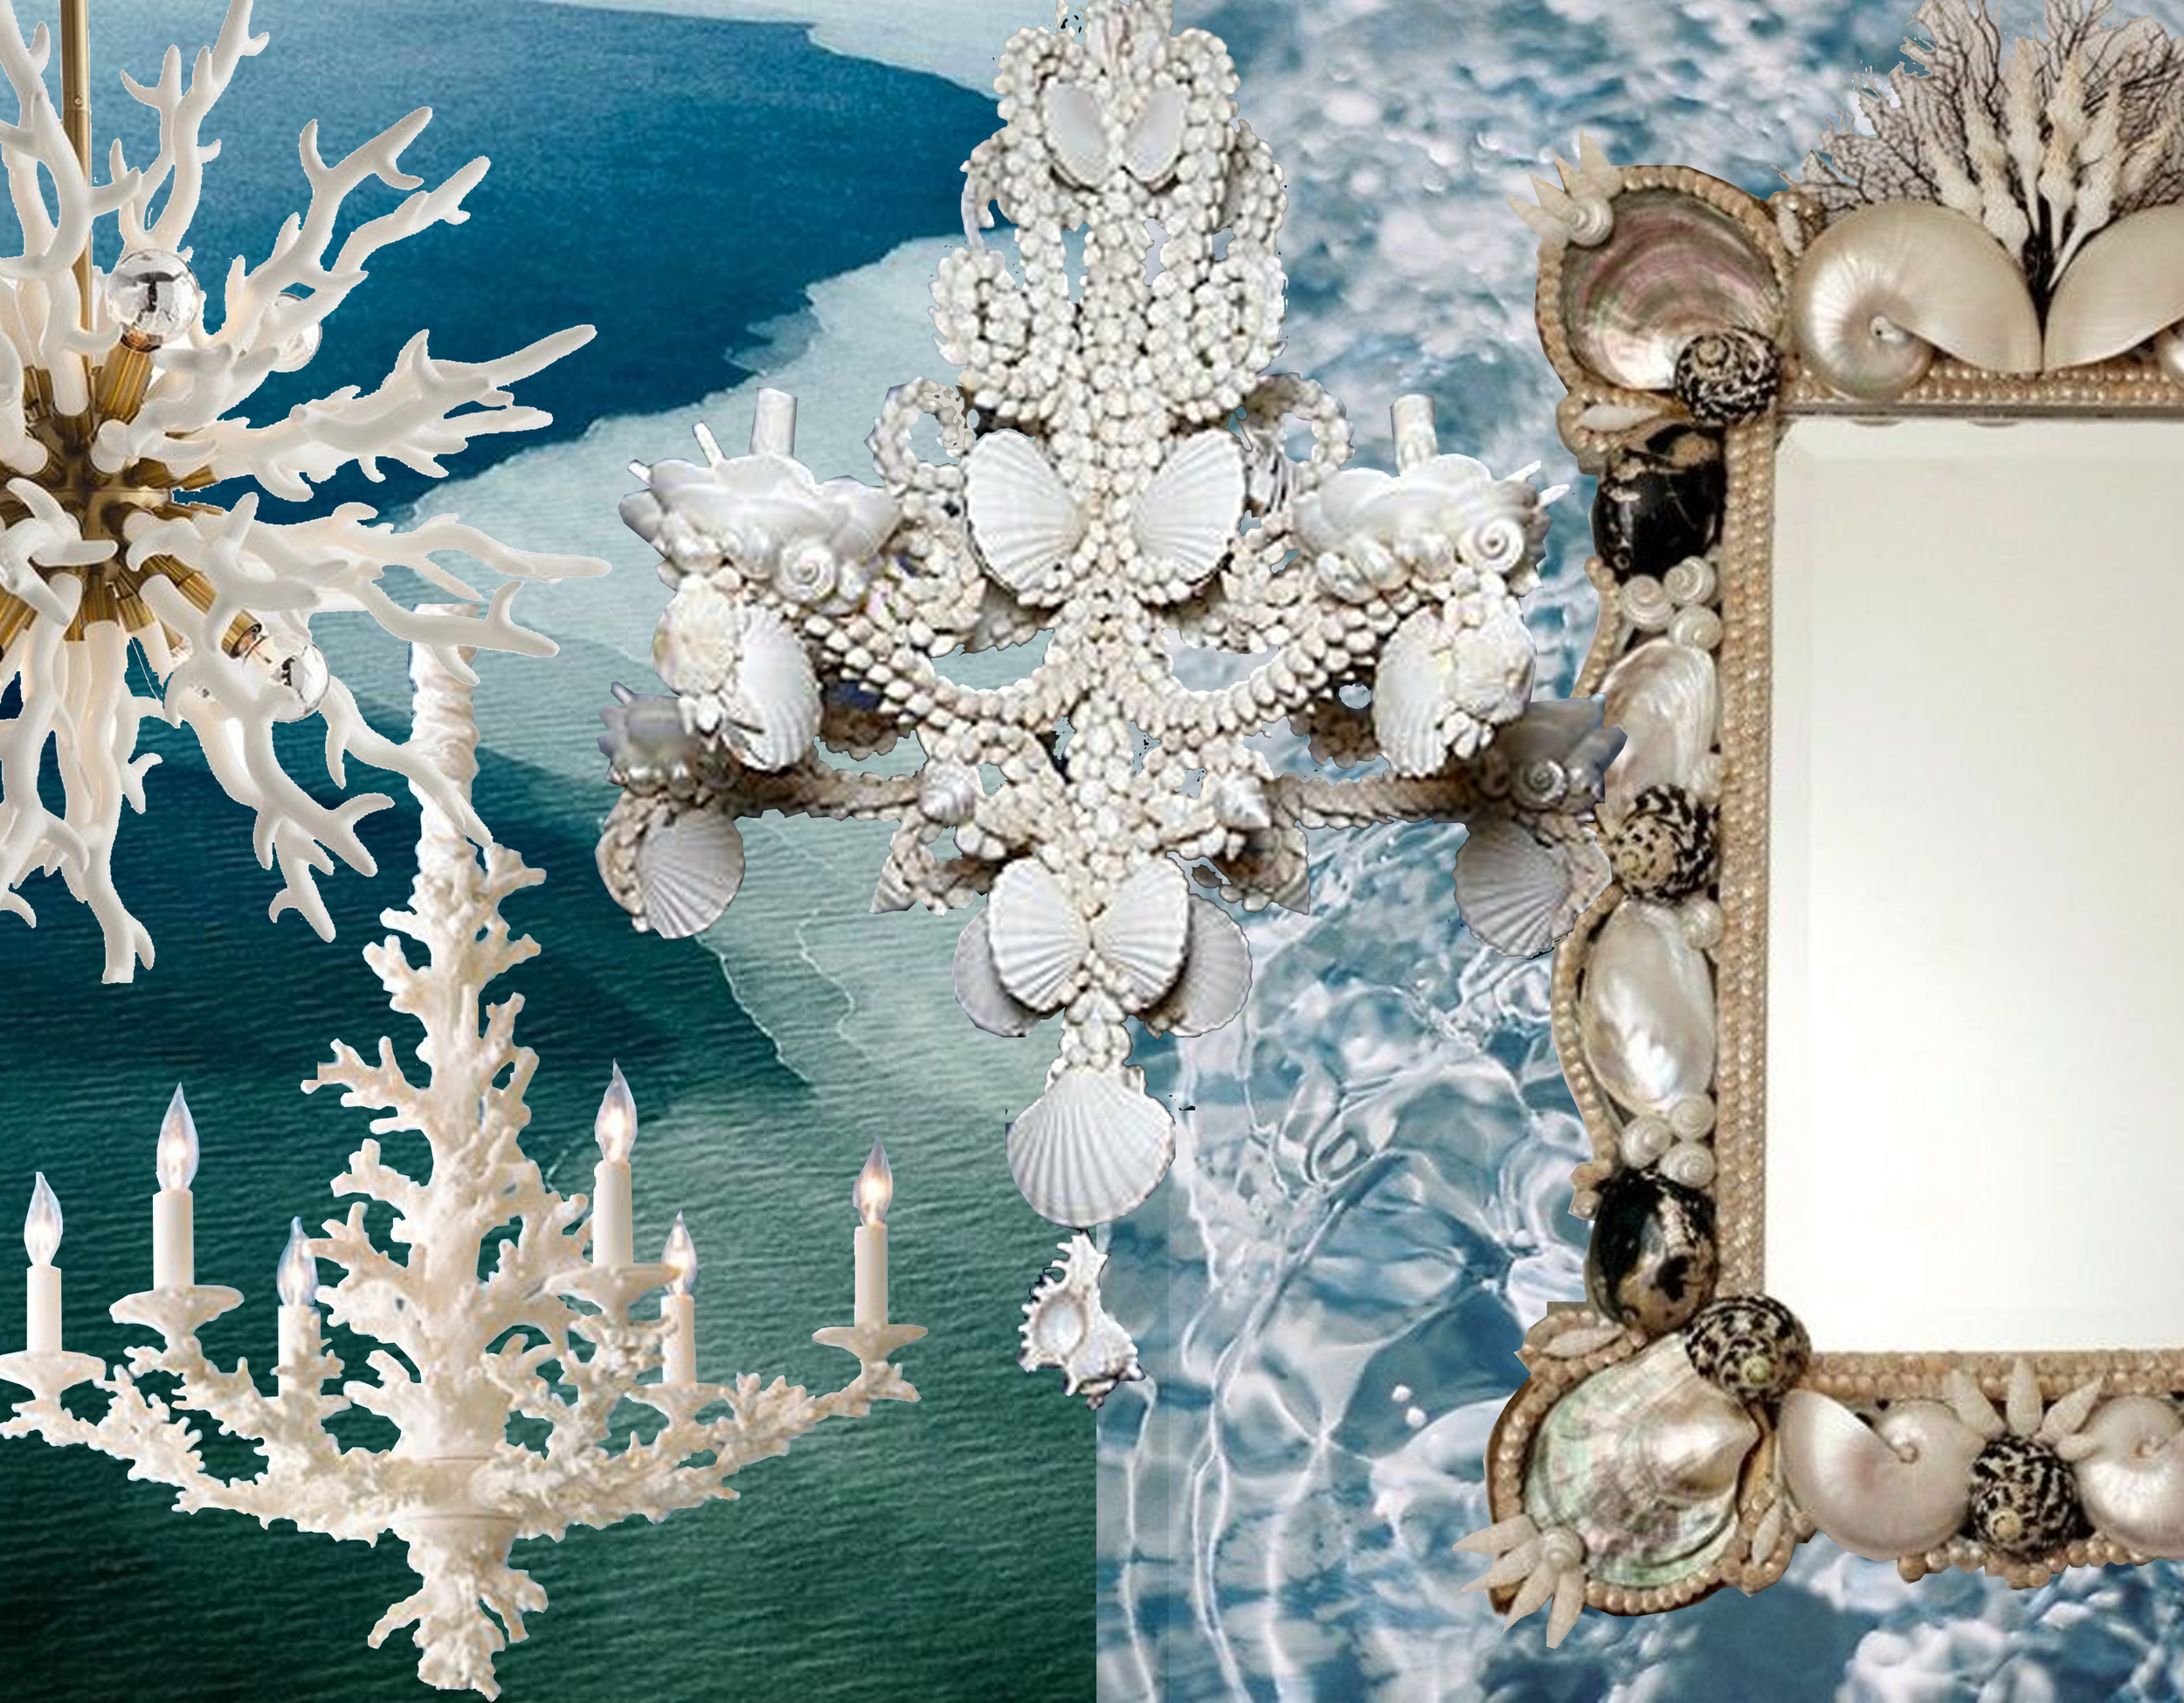 picture sea via  Arrows  -  picture water on  Pinterest  - Diallo chandelier  Arteriors  - coral chandelier  Pinterest  - baroque shell chandelier and mirror via  Digs Digs